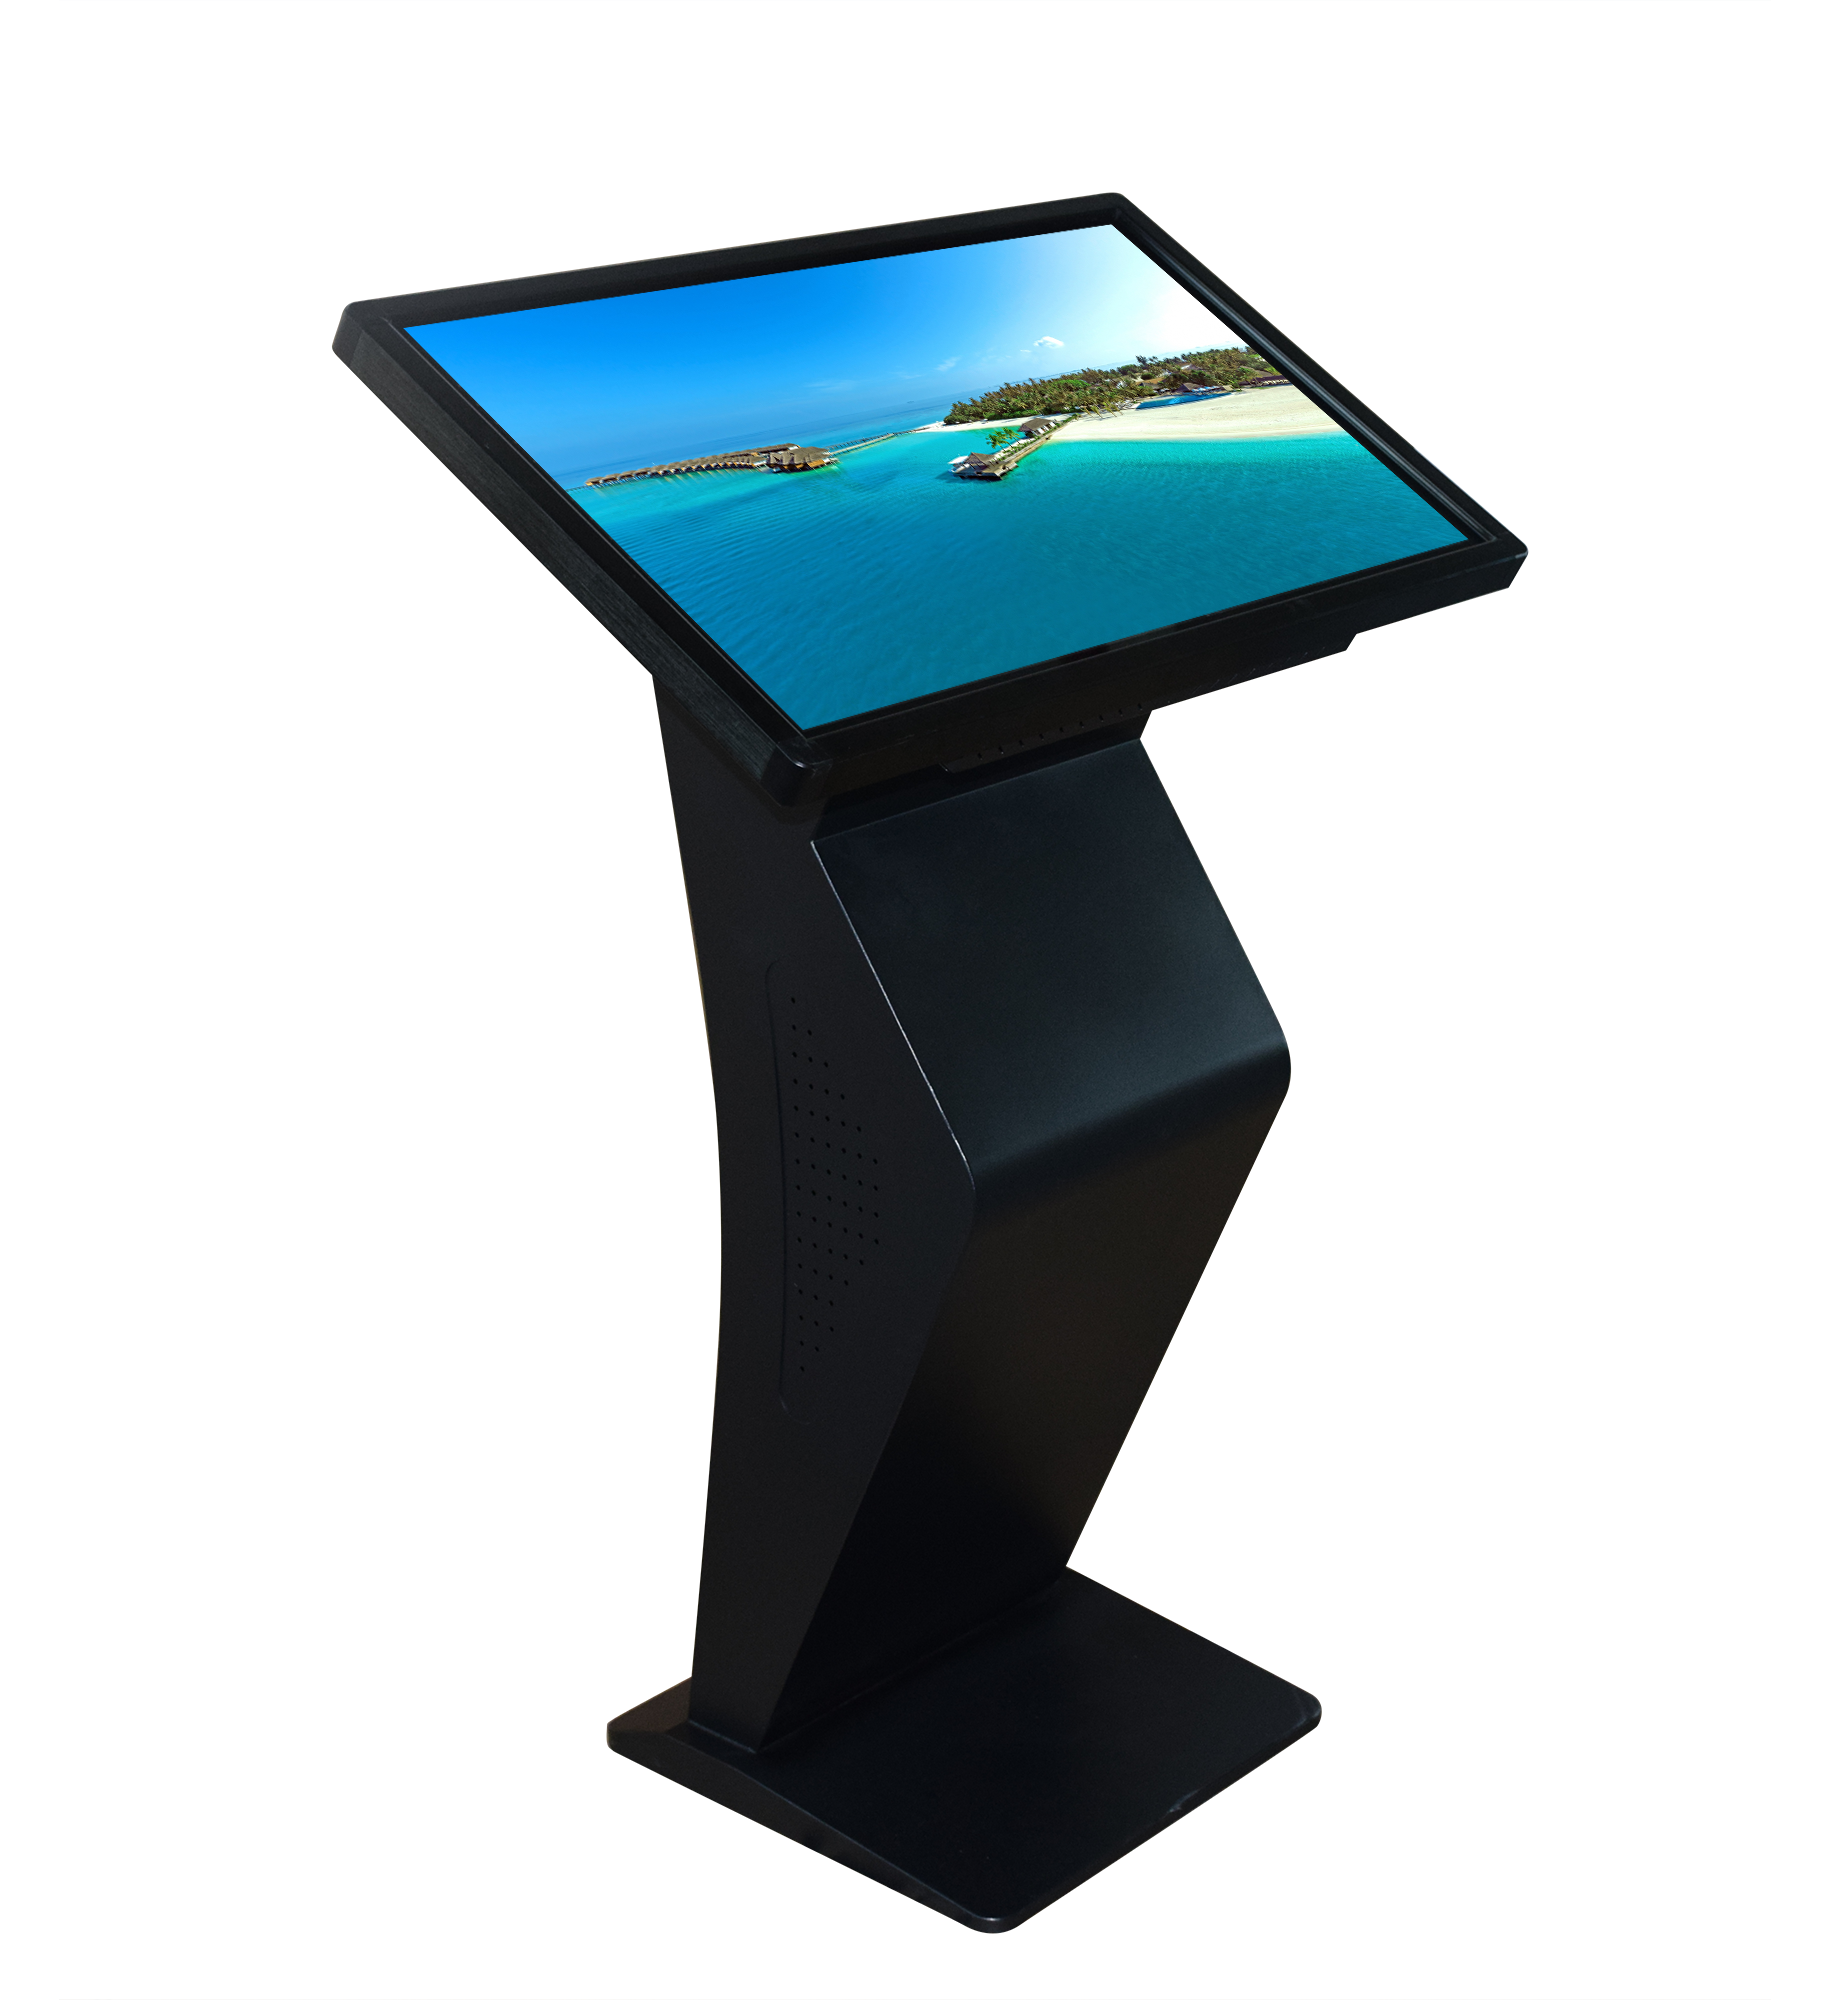 VESA mounting system interactive digital display touchscreen tablet customize external hardware such as printer, barcode